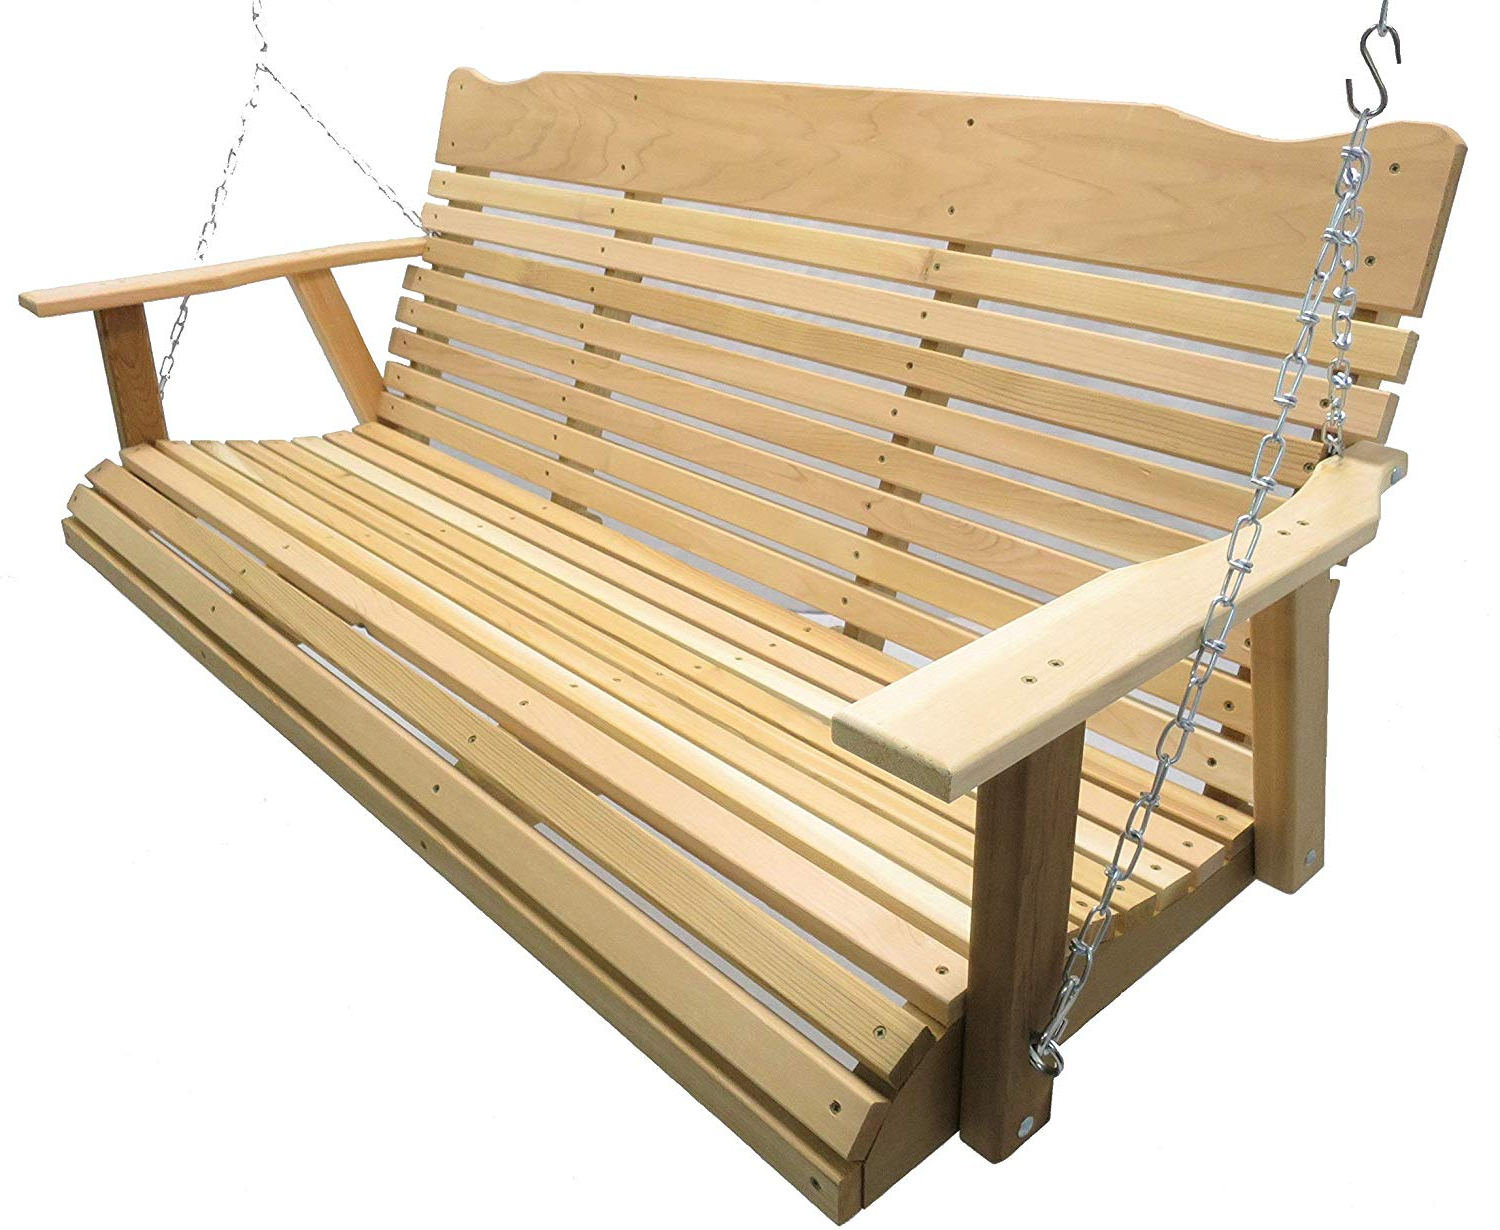 Porch Swings With Chain Intended For Well Known Kilmer Creek 5' Natural Cedar Porch Swing, Amish Crafted – Includes Chain & Springs (View 29 of 30)